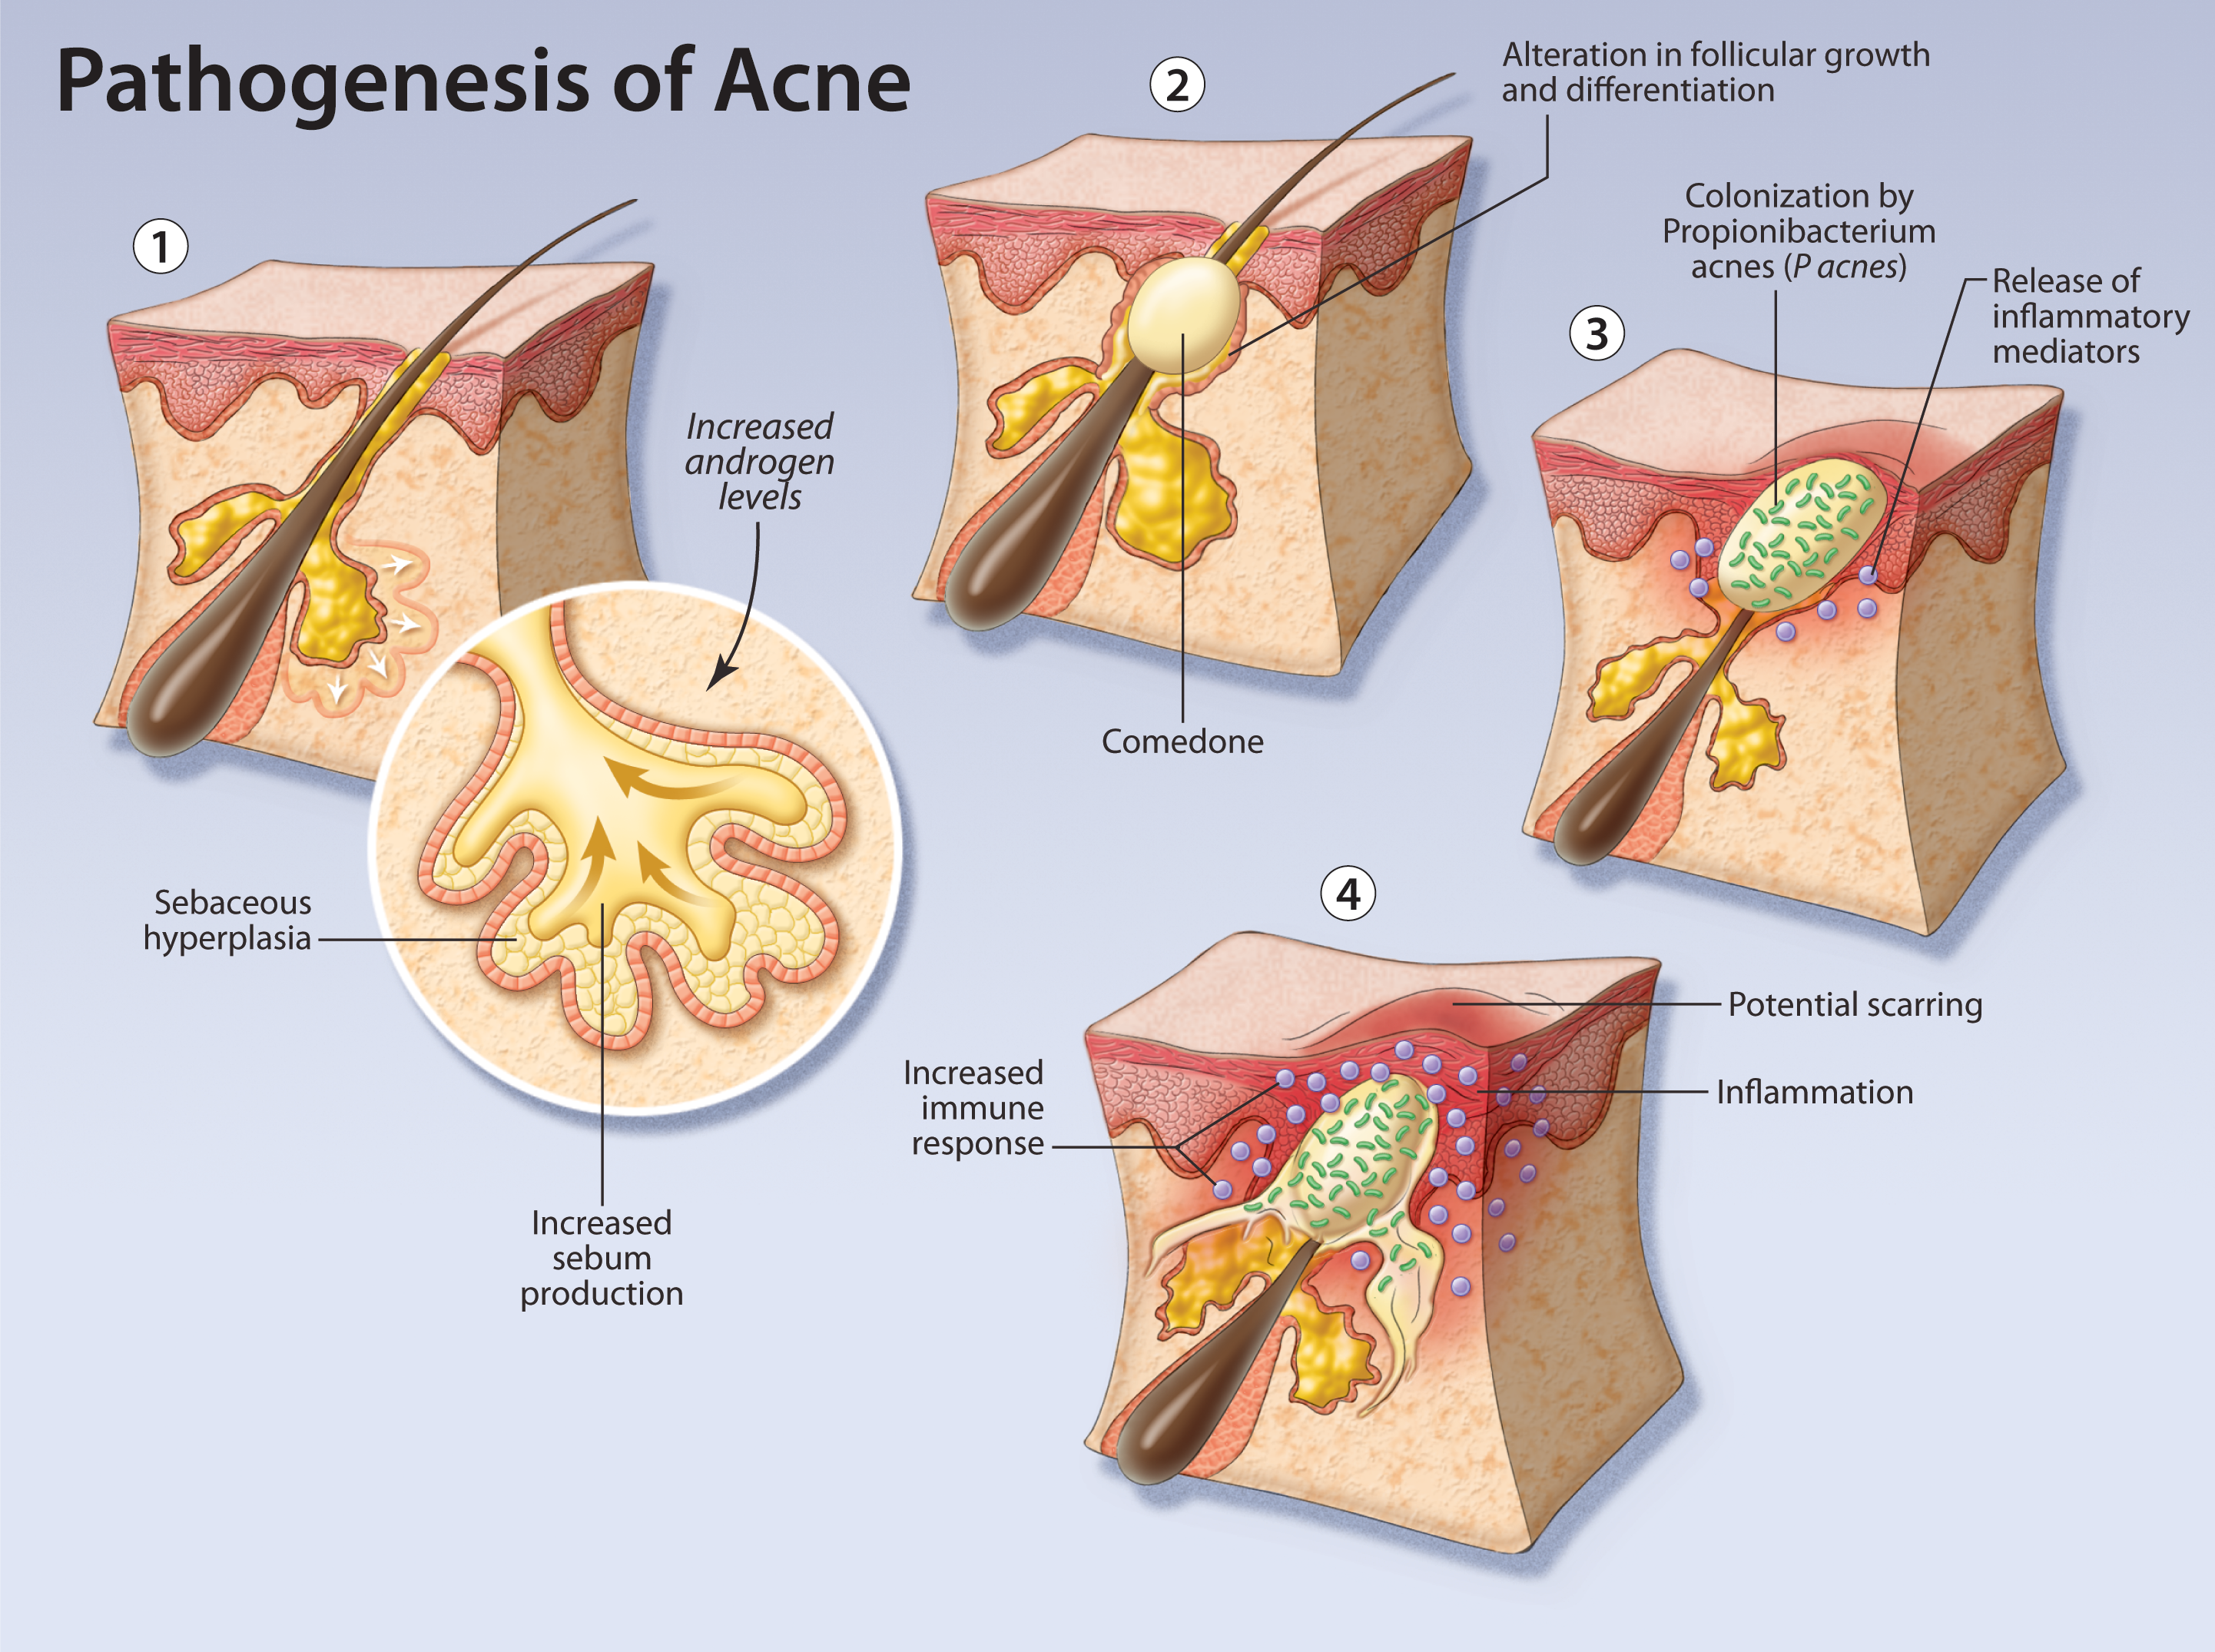 Clearing Up Acne Treatment For The Primary Care Physician